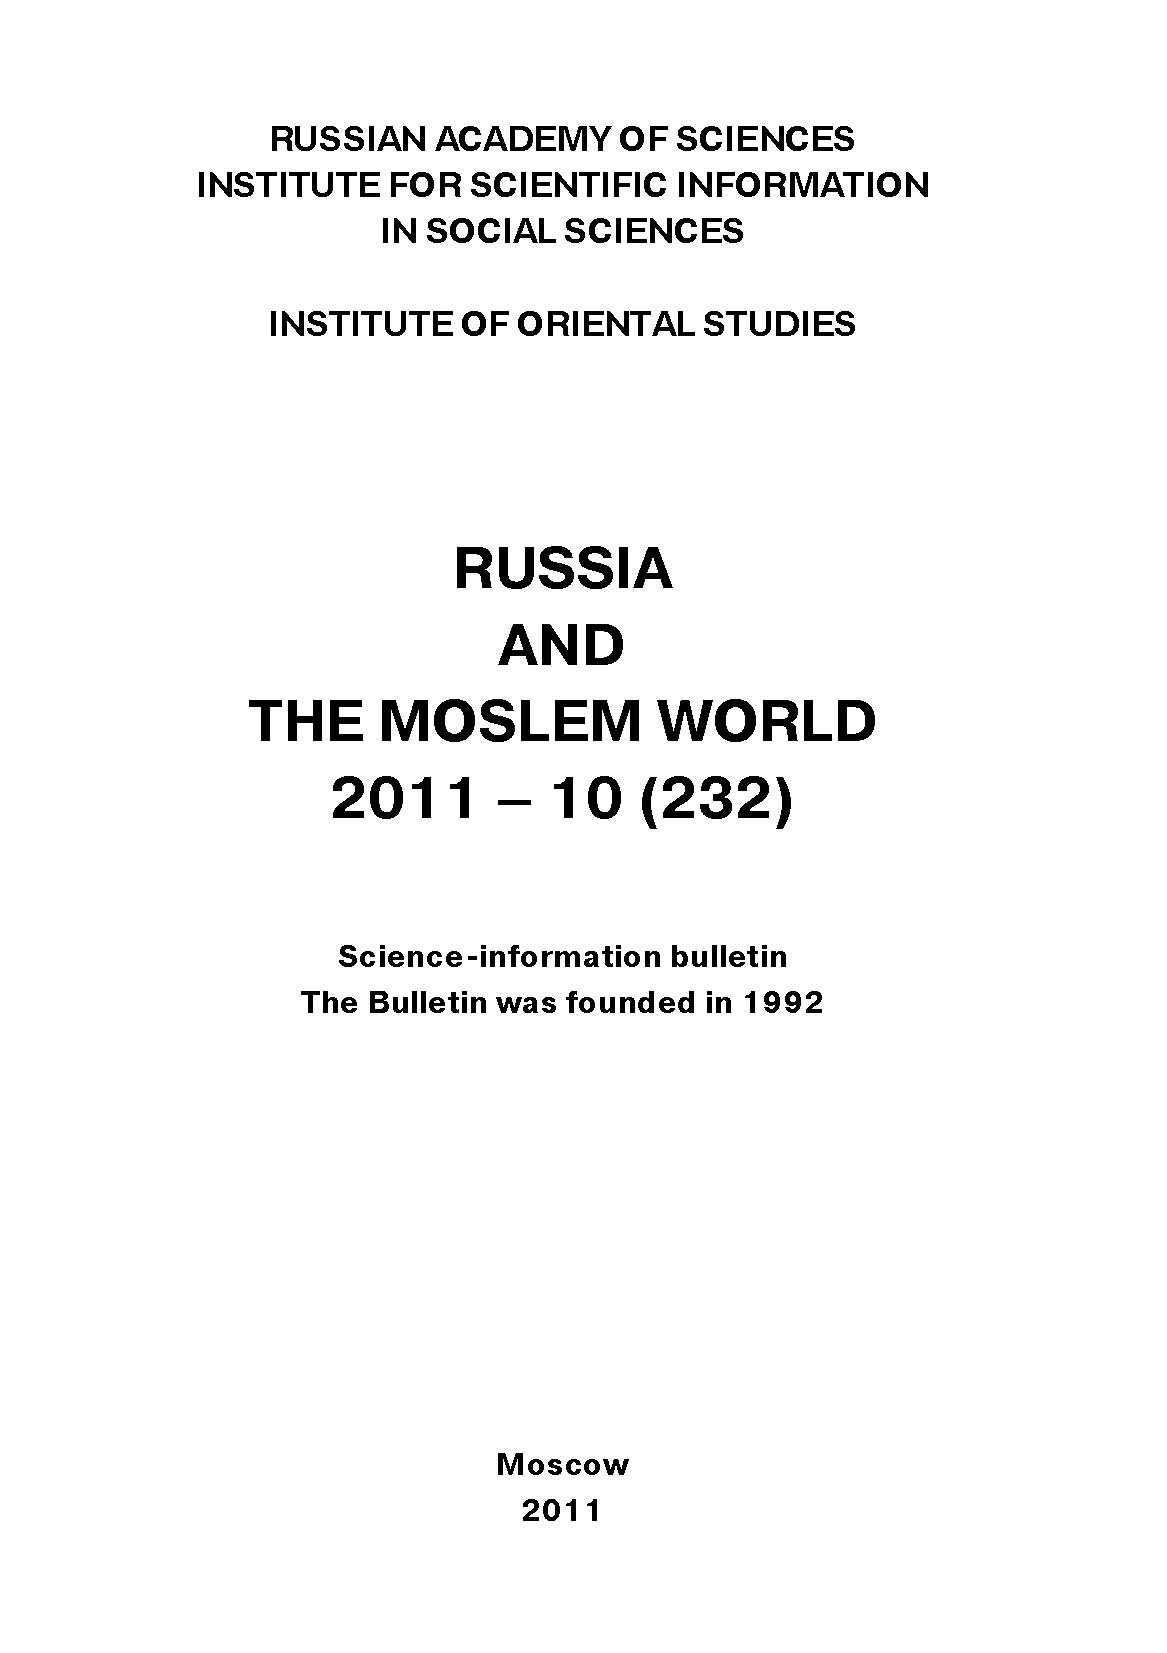 Сборник статей Russia and the Moslem World № 10 / 2011 сборник статей russia and the moslem world 04 2011